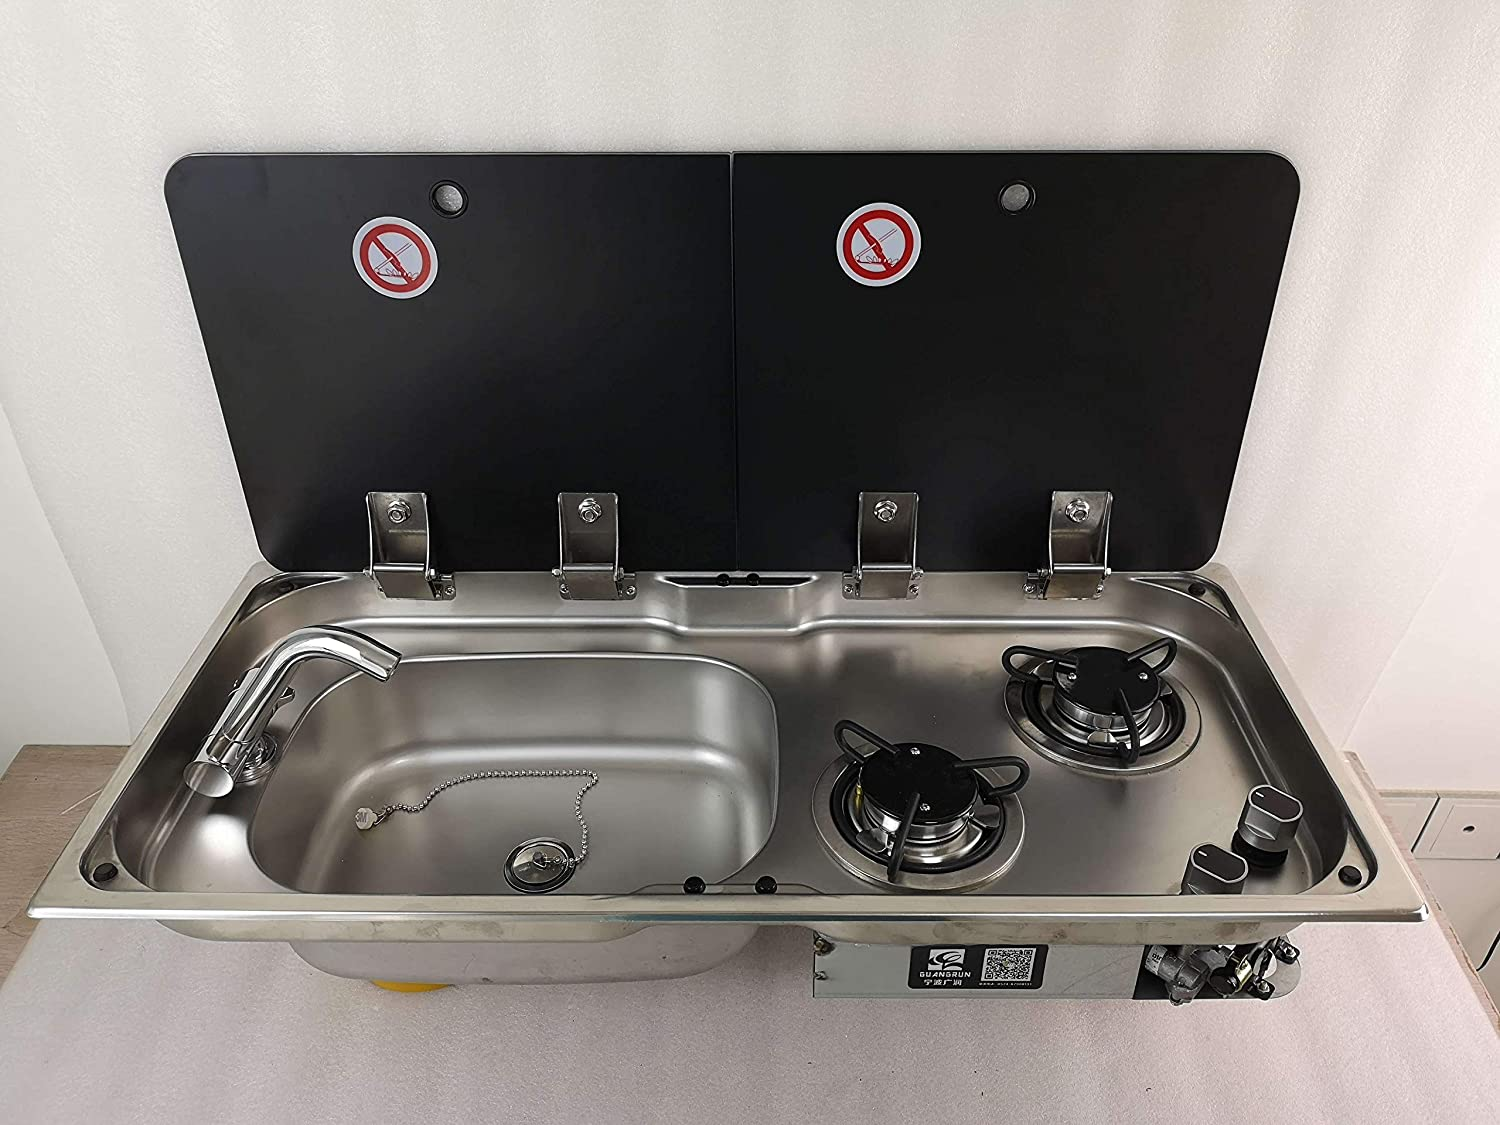 Boat Caravan RV Camper 2 Burner LPG Gas Stove Hob and Sink Combo with 2 Tempered Glass Top 775365150/120mm GR-904LD (With Faucet)